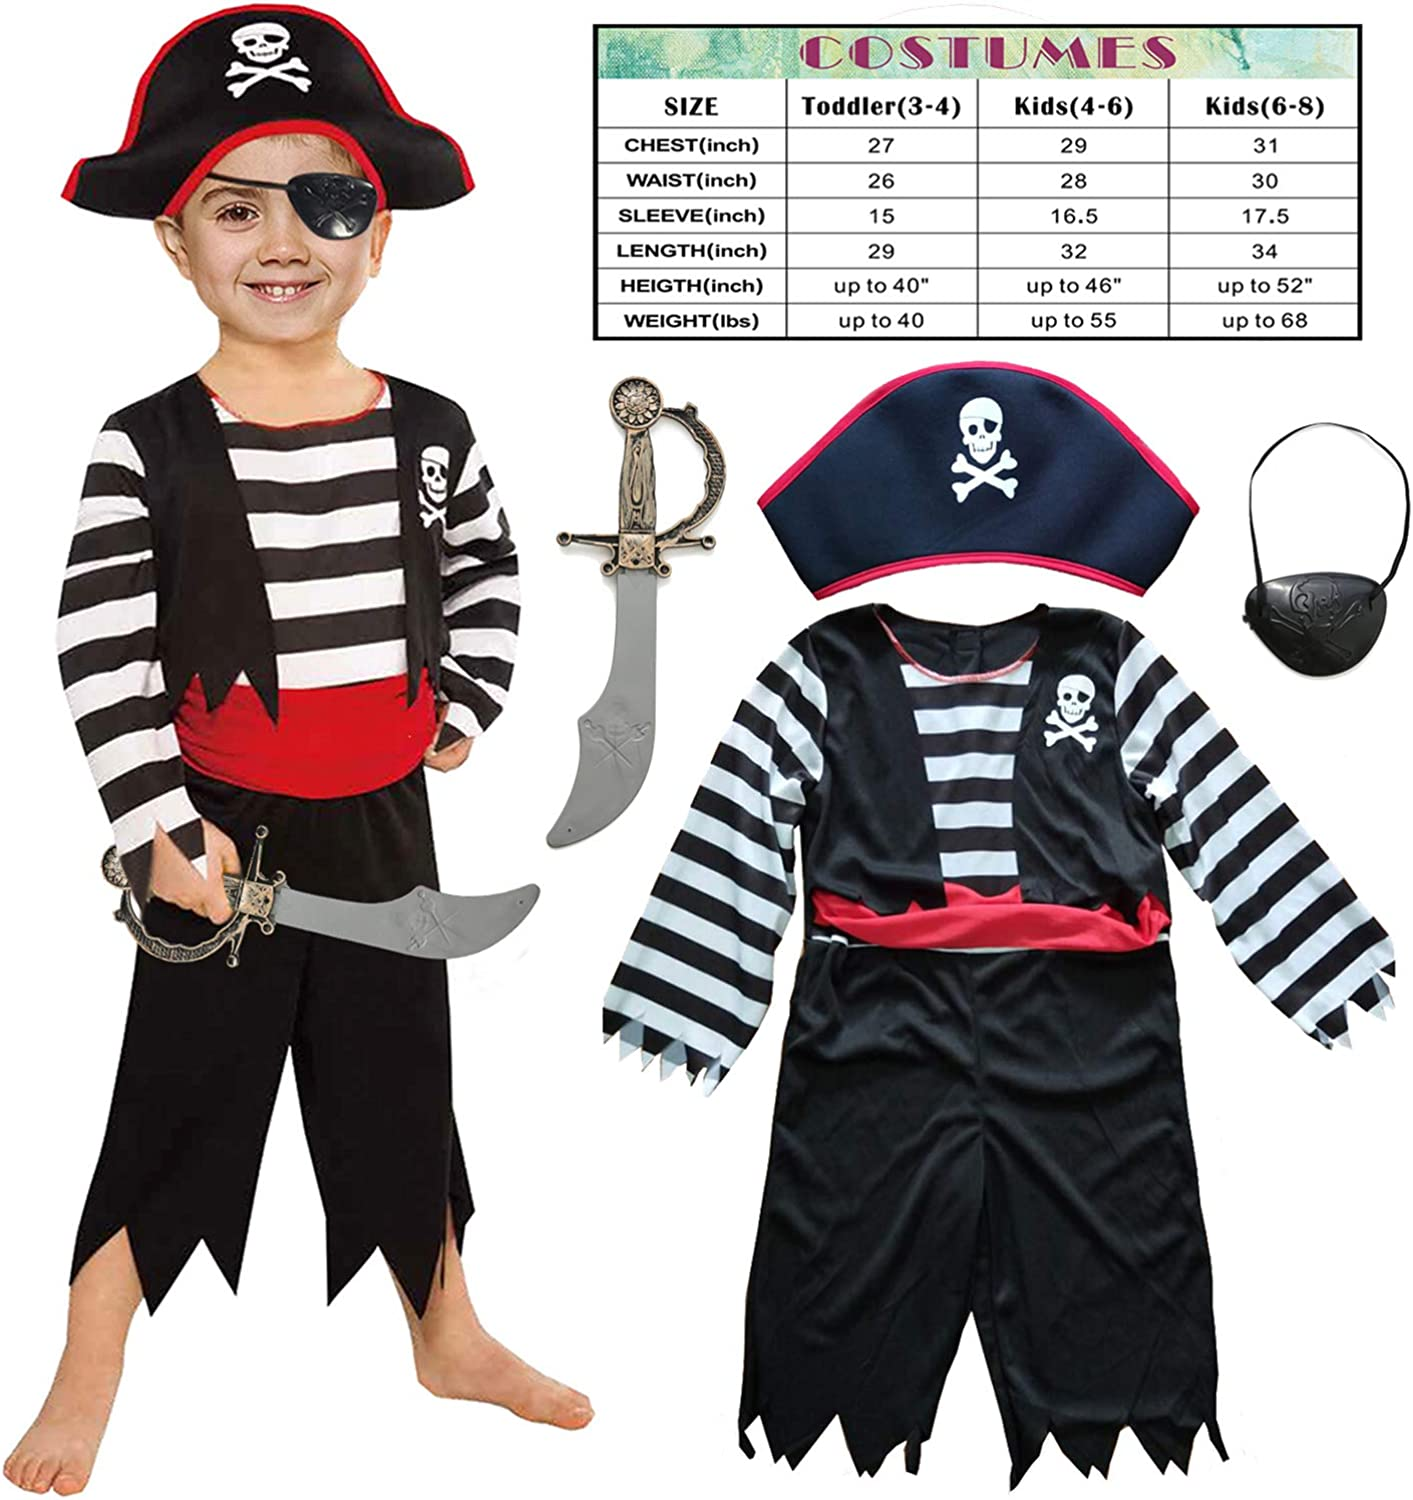 Leadtex Children's Pirate Costume for Toddlers Boys Girls with All in one Pirate Suit,Cutlass,Eyepatch